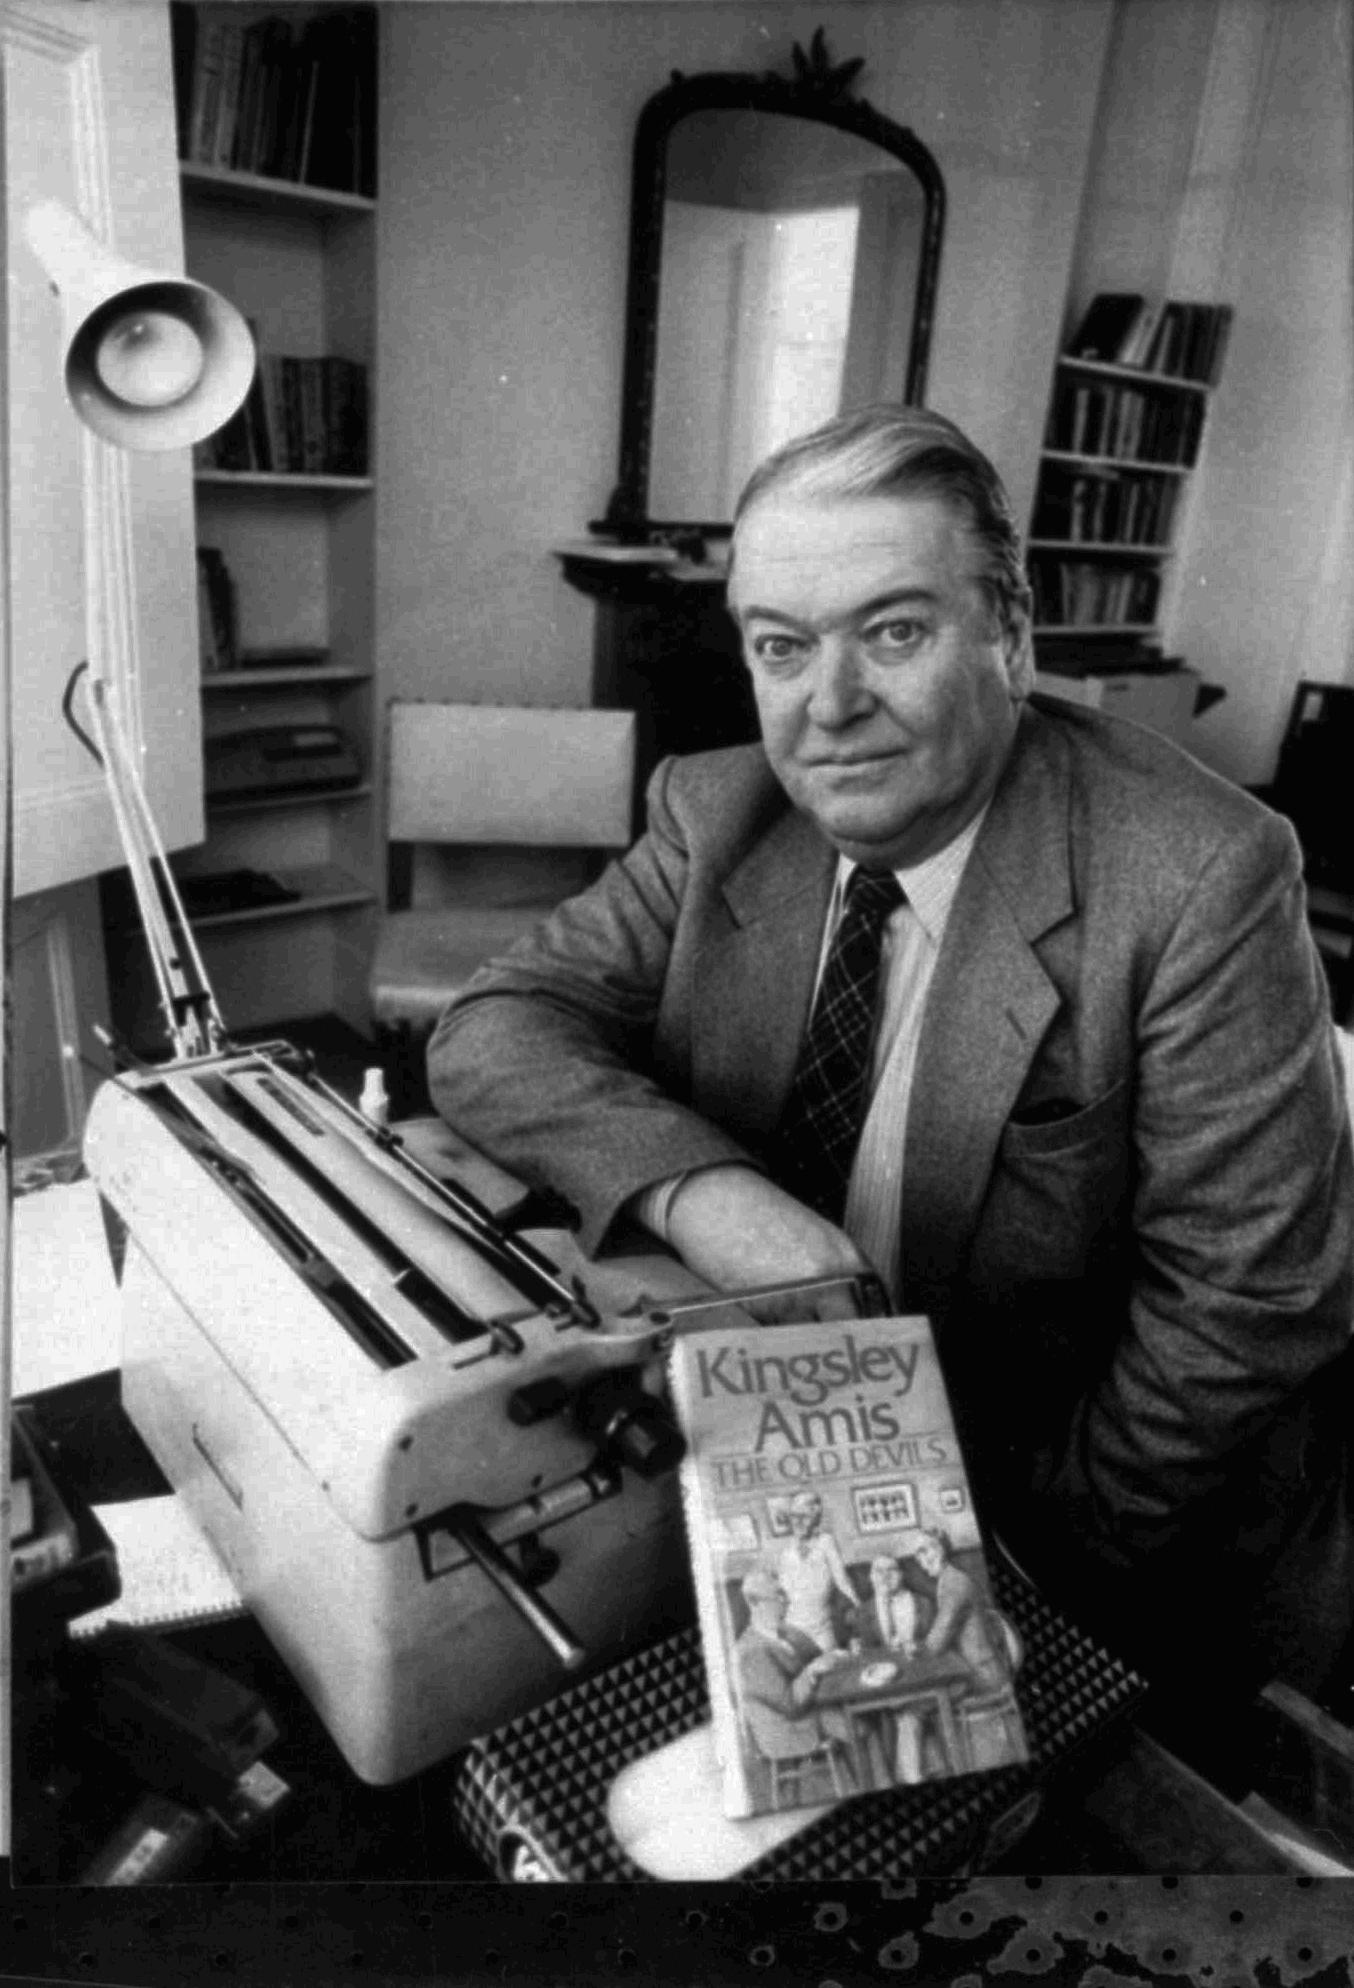 Kingsley Amis lucky jim